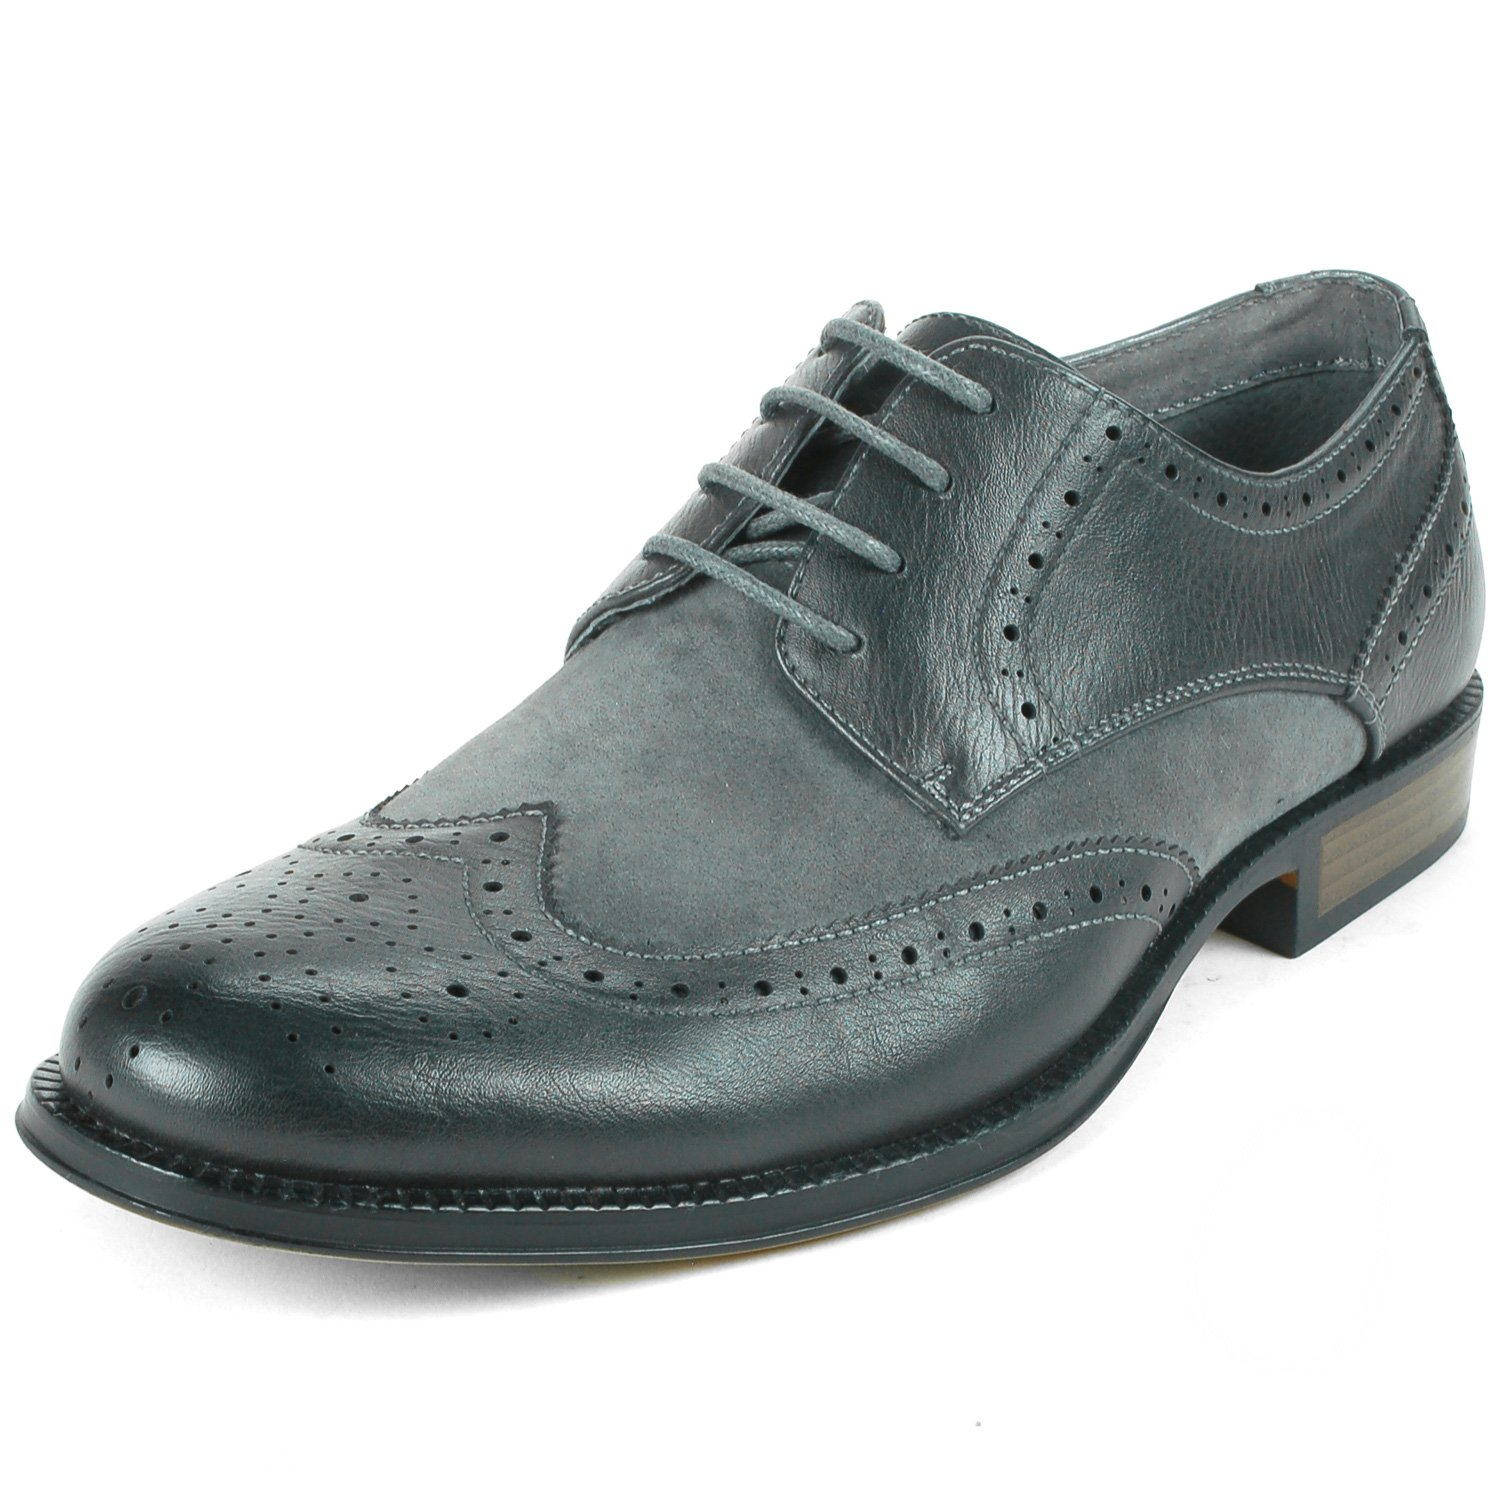 Mens Vintage Style Shoes| Retro Classic Shoes  Wing Tip Oxfords Two-tone Brogue Medallion $34.99 AT vintagedancer.com